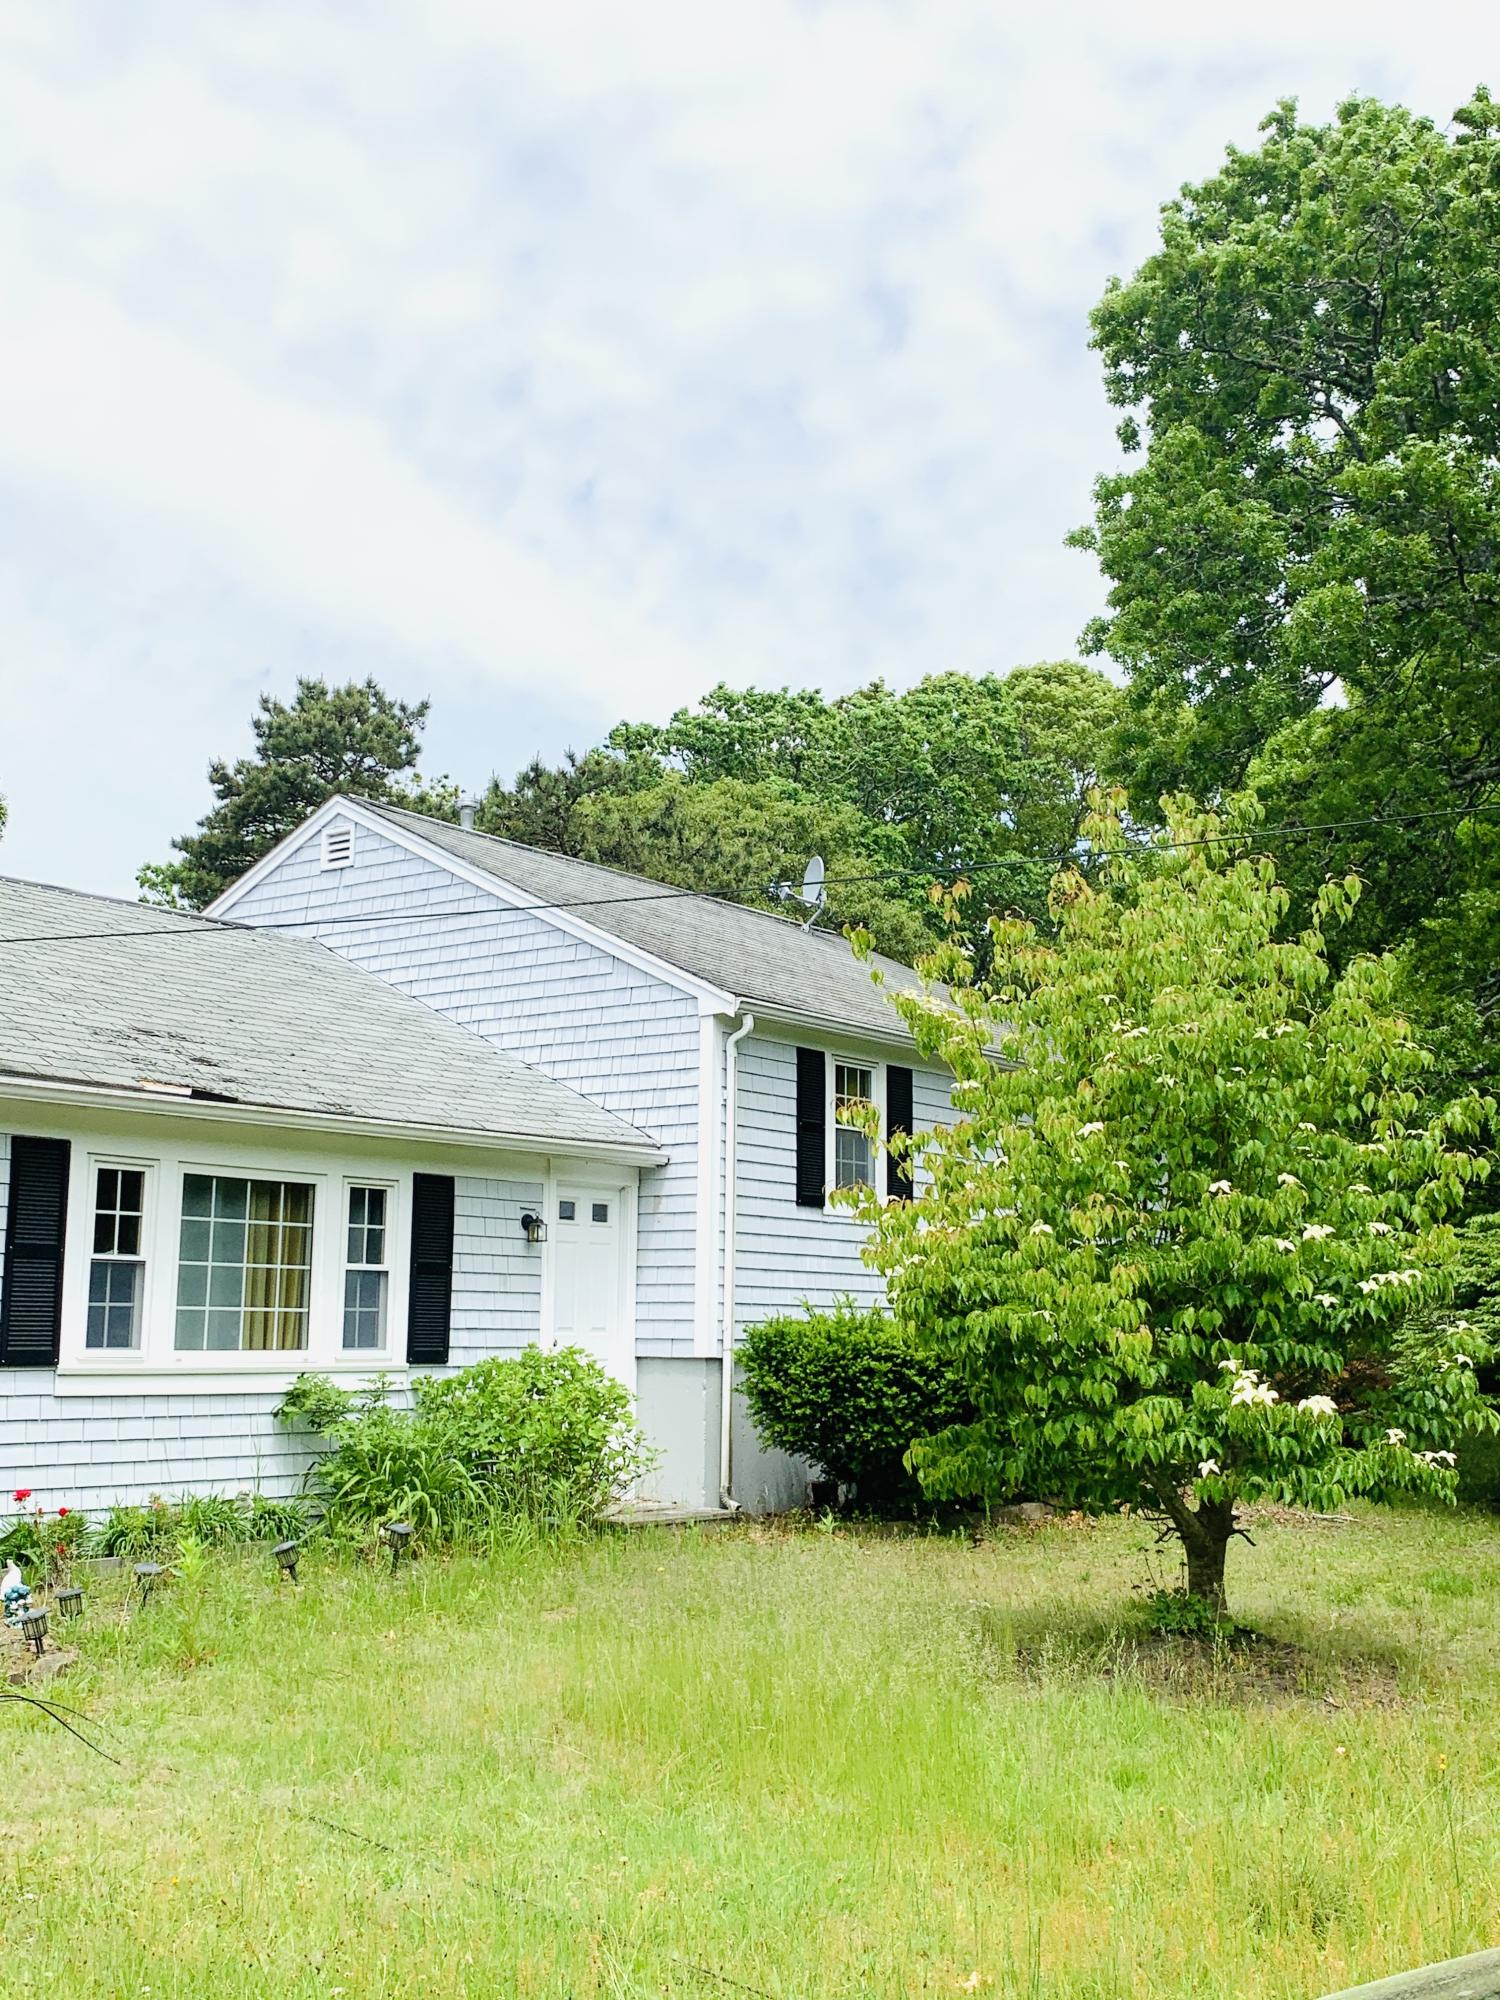 57 Cleveland Way, West Yarmouth MA, 02673 details